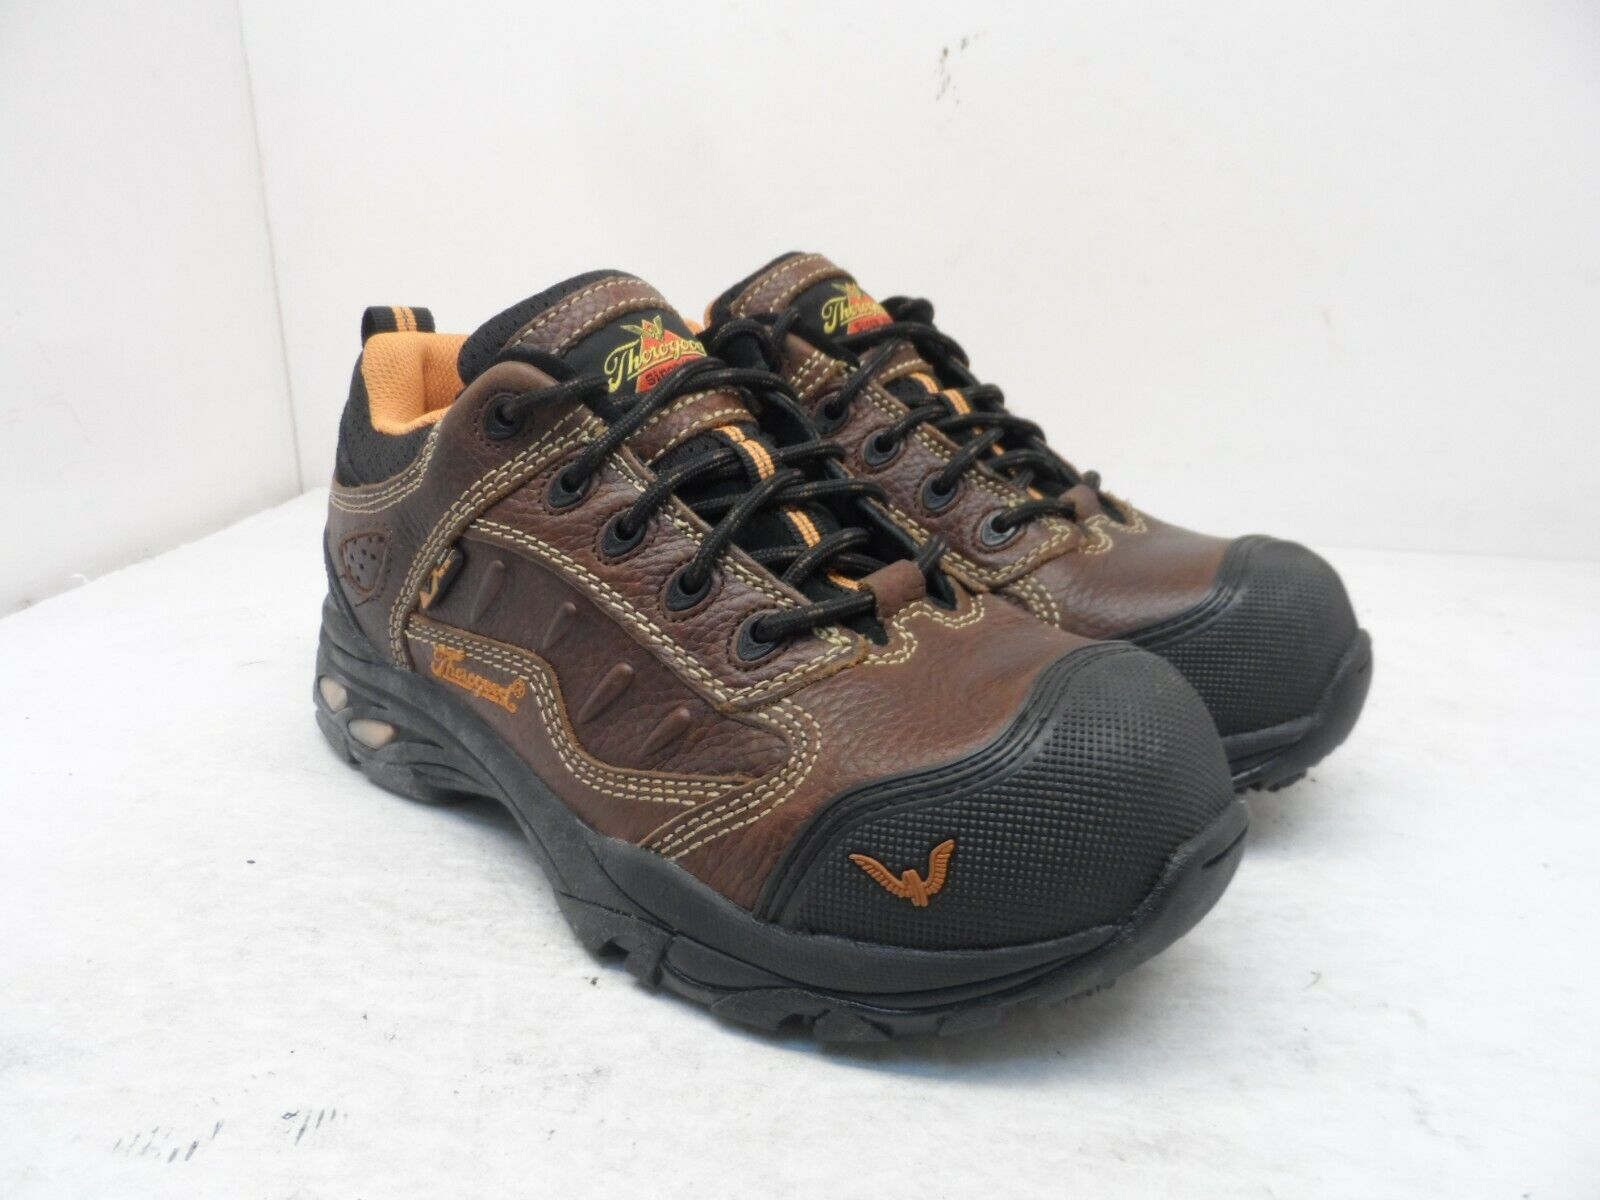 Thorogood Women's Static Dissipative Comp Toe Work Shoes Brown Leather Size 7.5M